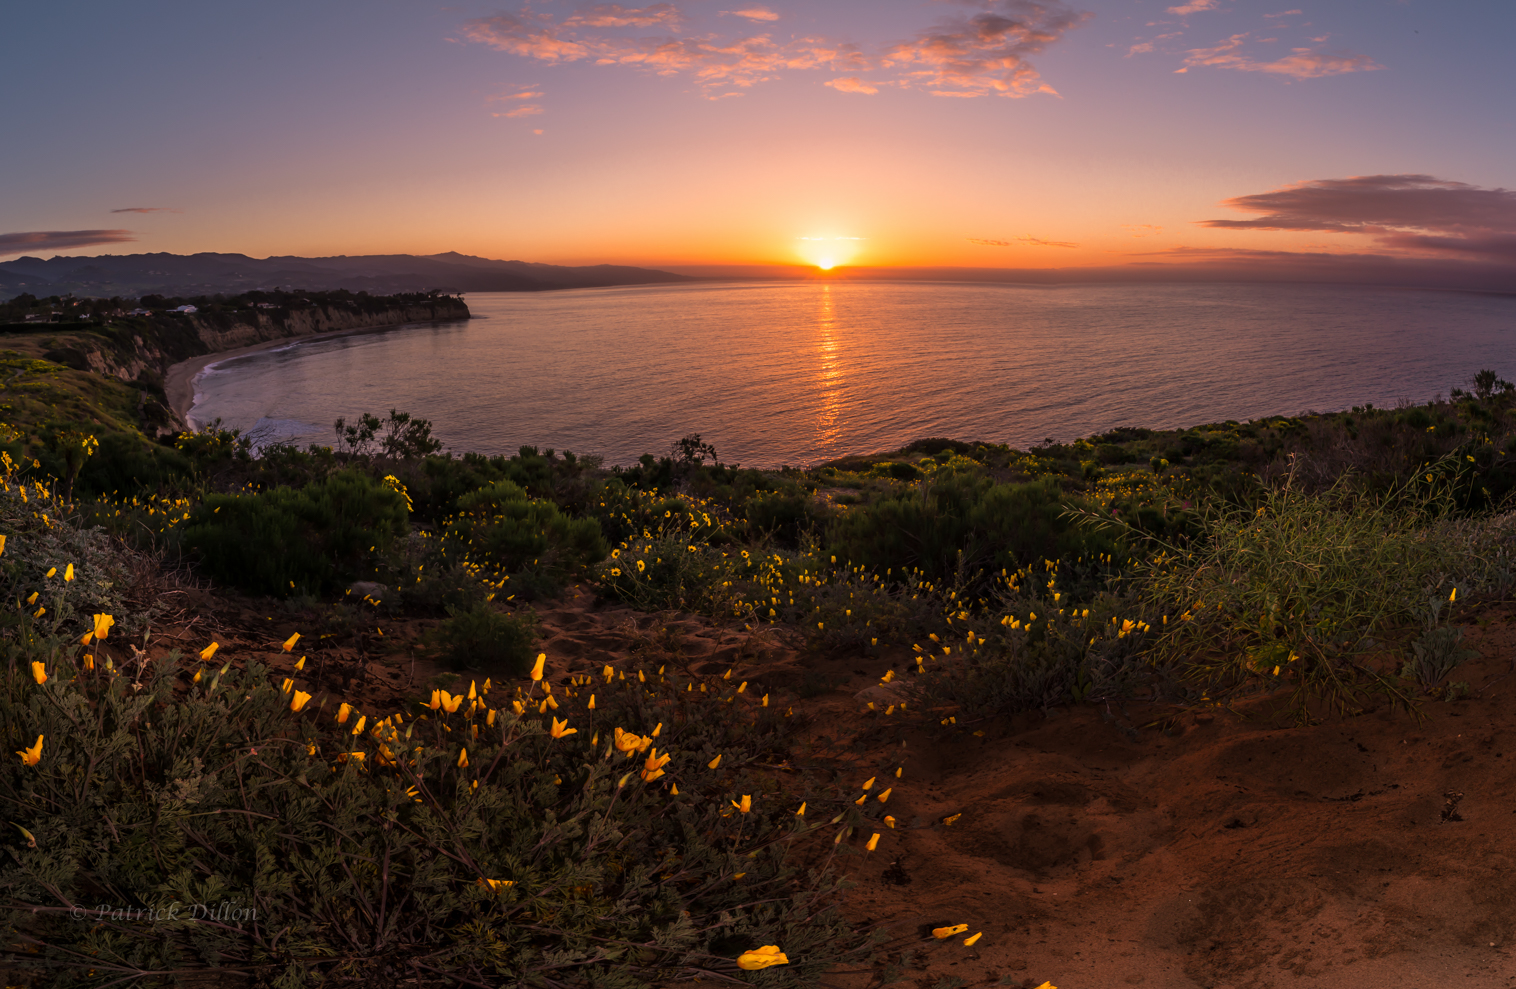 malibu sunset and flower bloom poppies